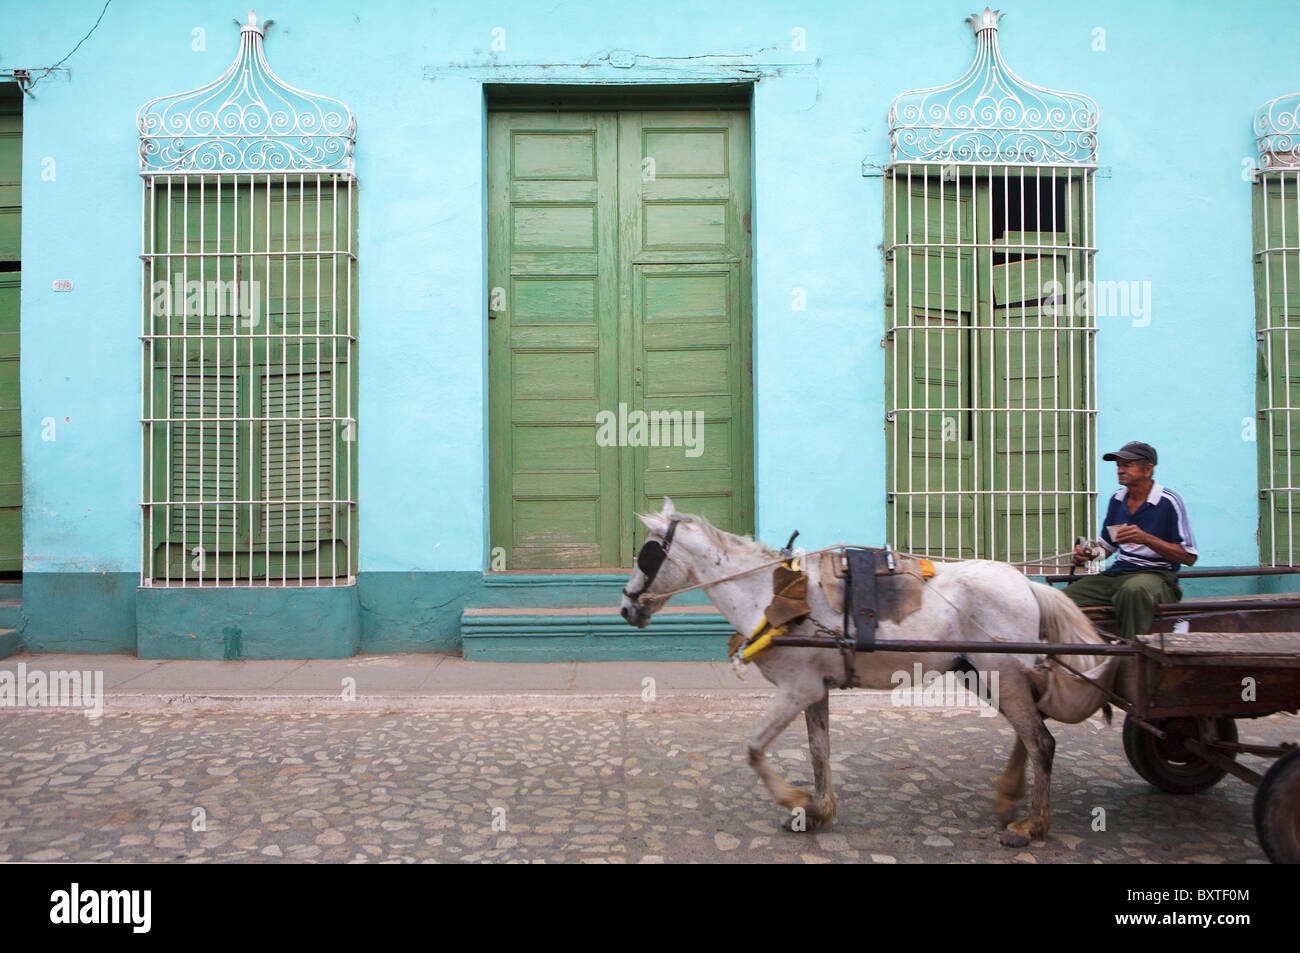 TRINIDAD : CHEVAL ET PANIER Photo Stock